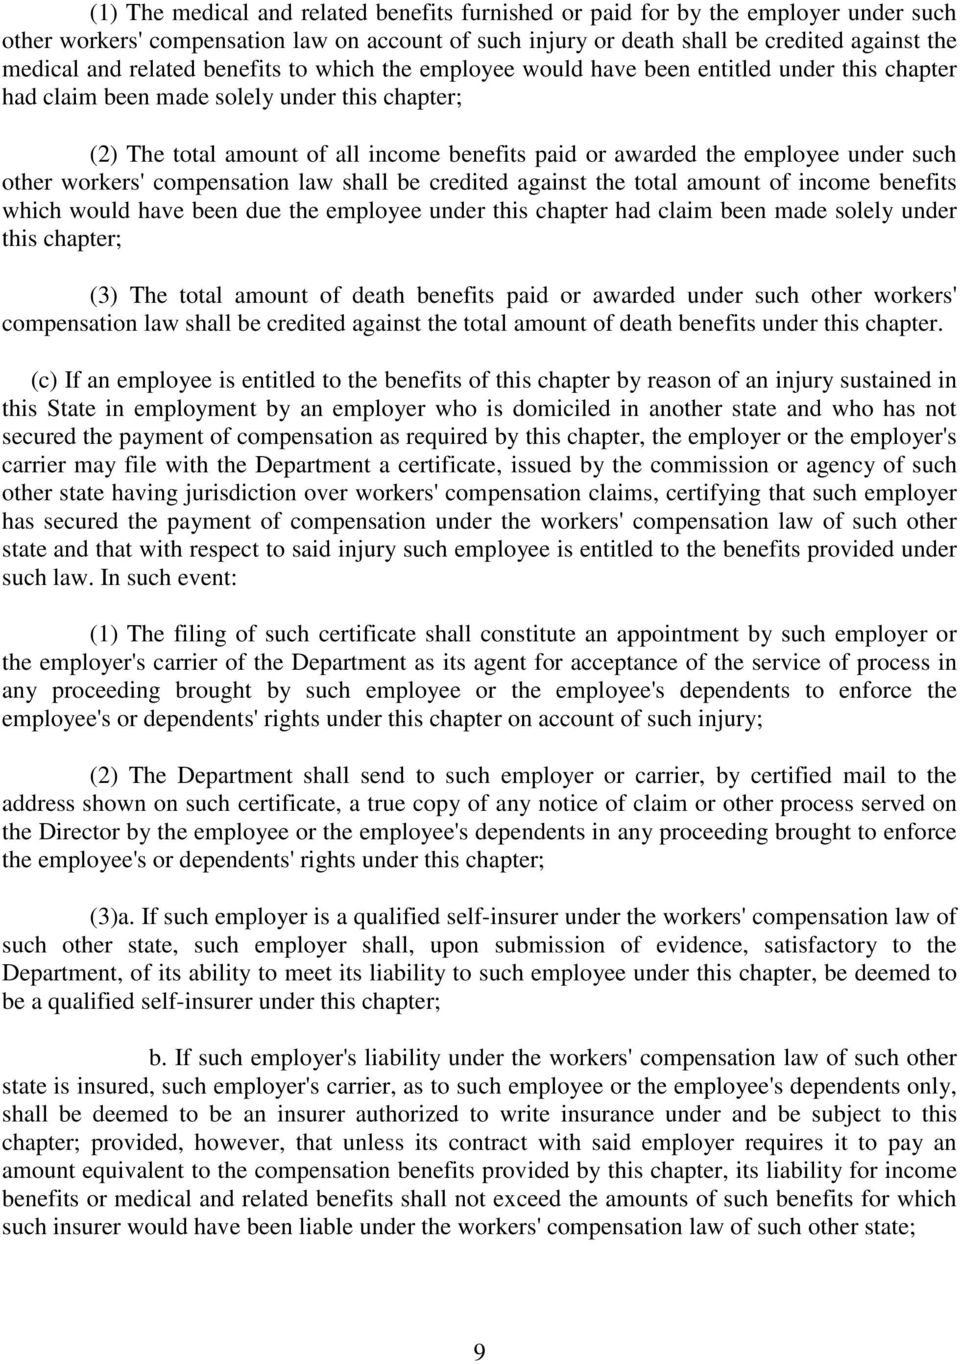 employee under such other workers' compensation law shall be credited against the total amount of income benefits which would have been due the employee under this chapter had claim been made solely